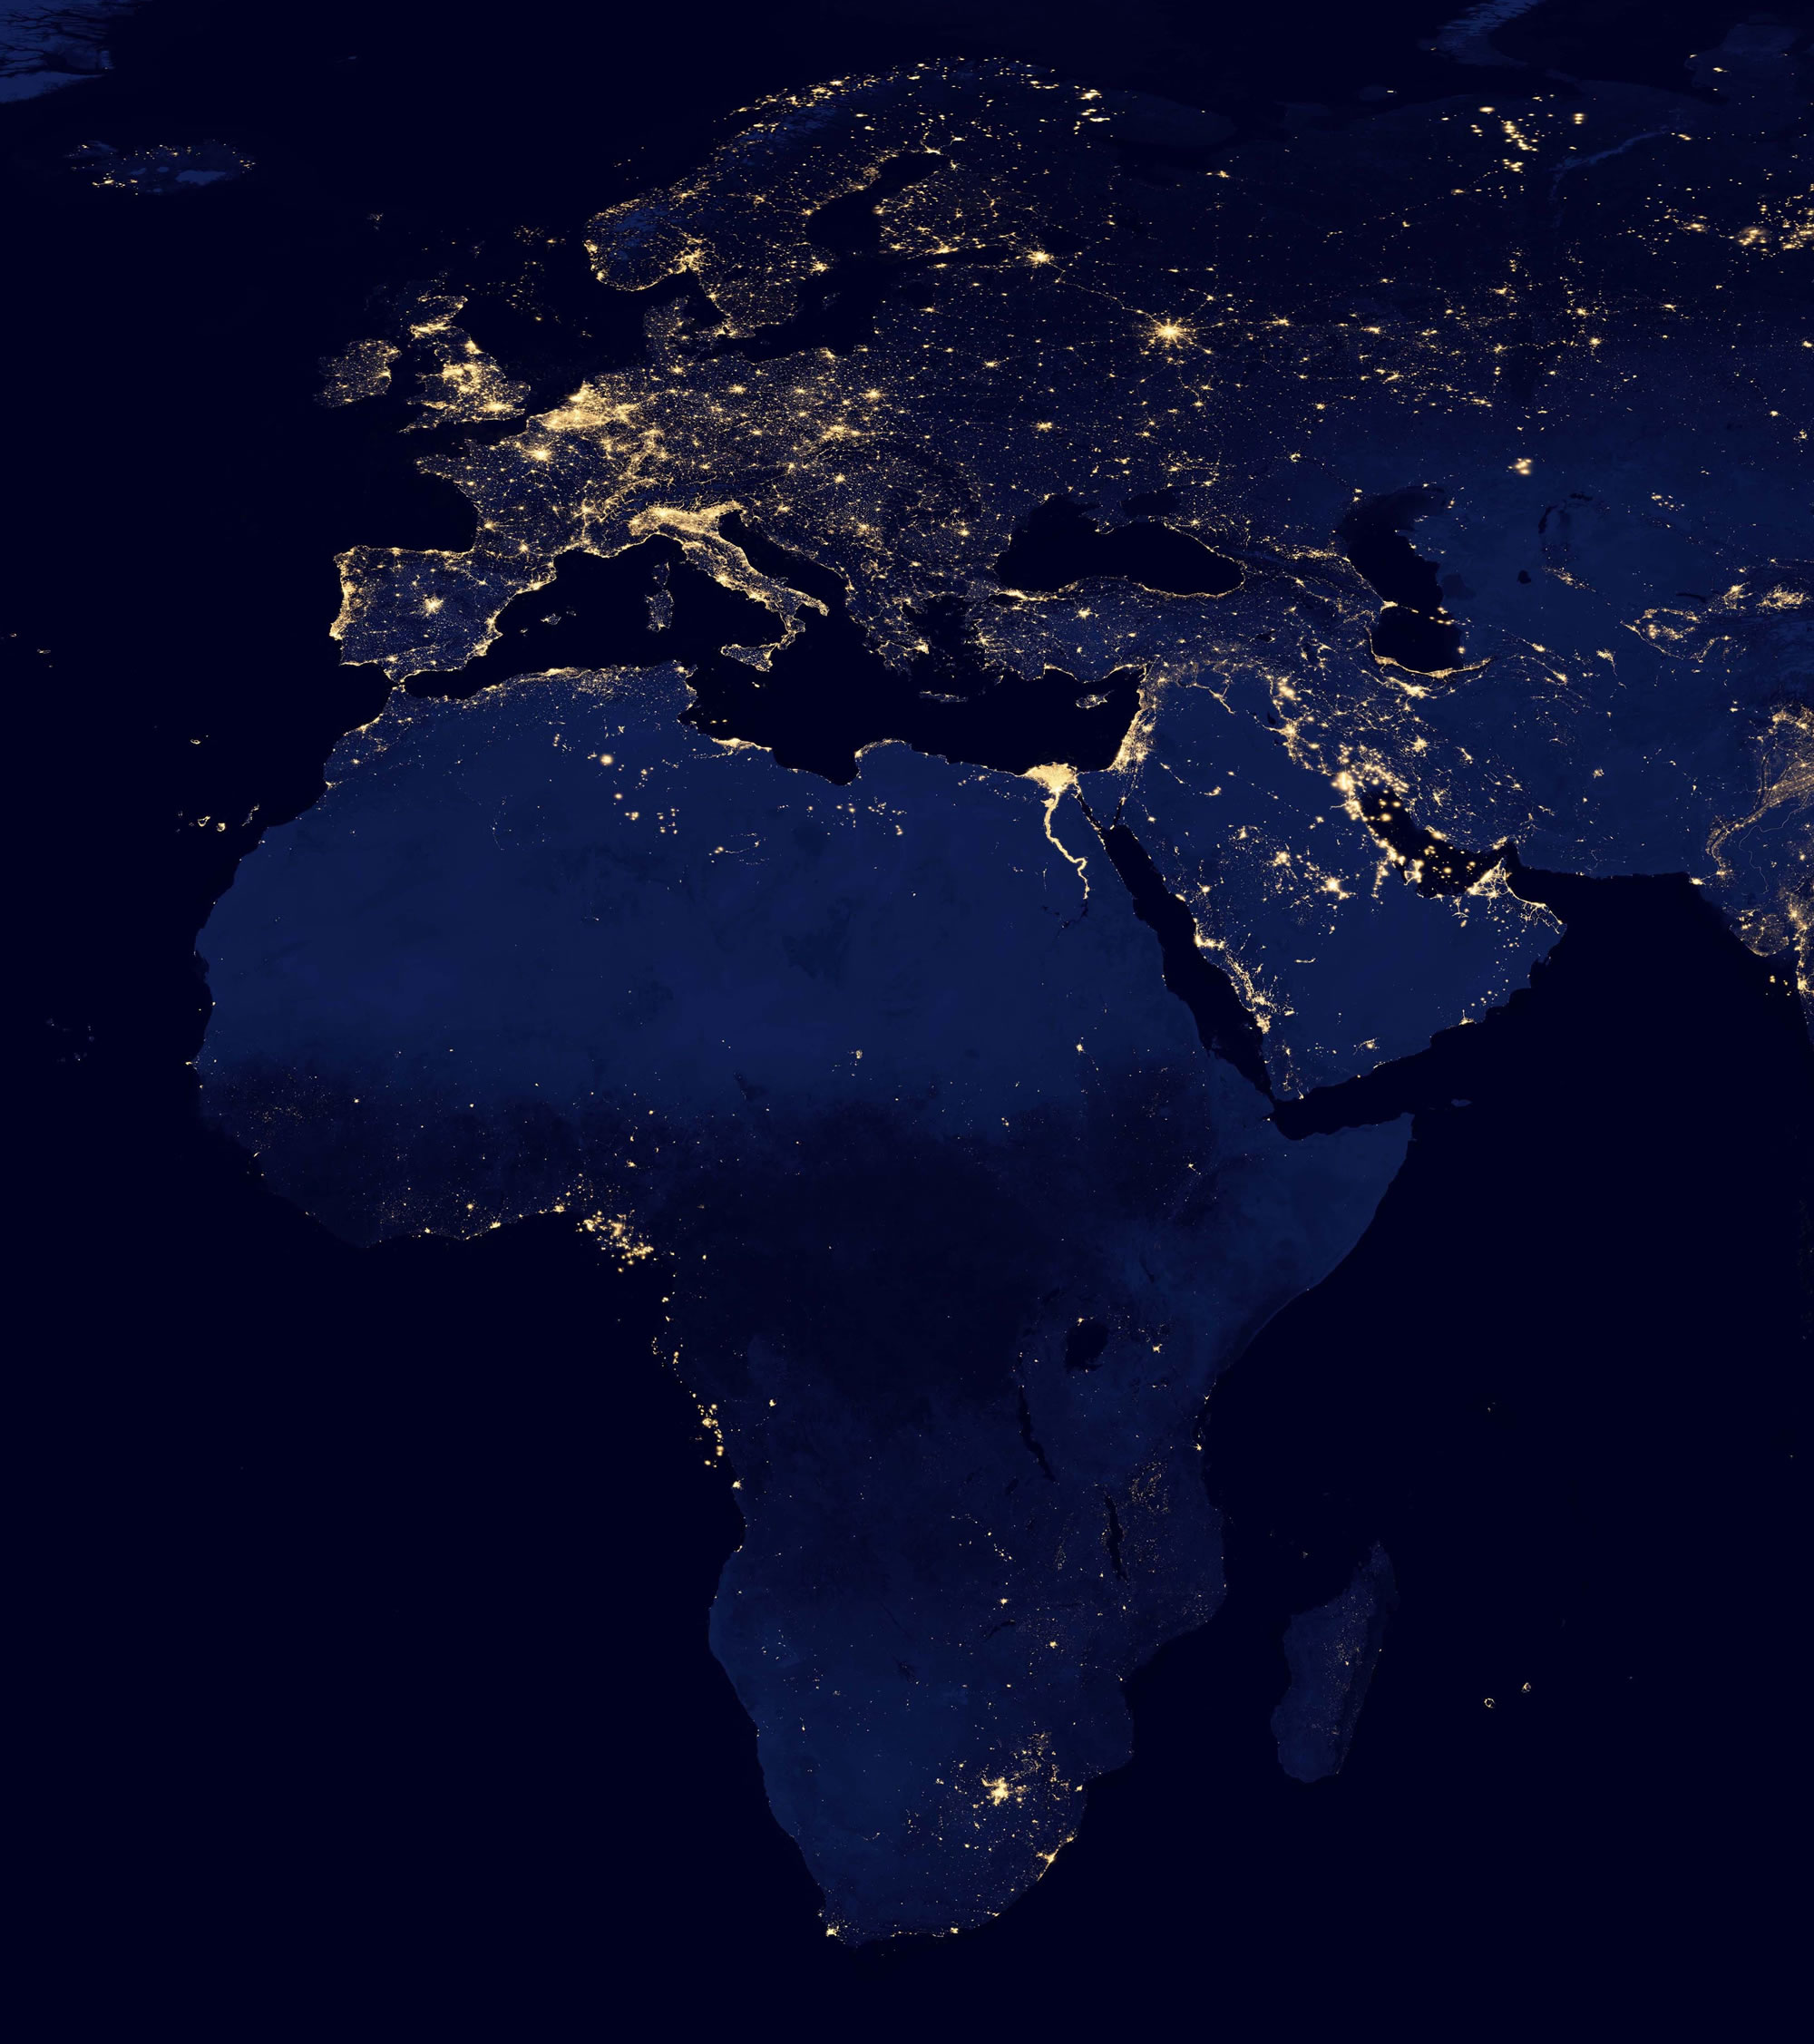 Night satellite photos earth us europe asia world europe and africa at night gumiabroncs